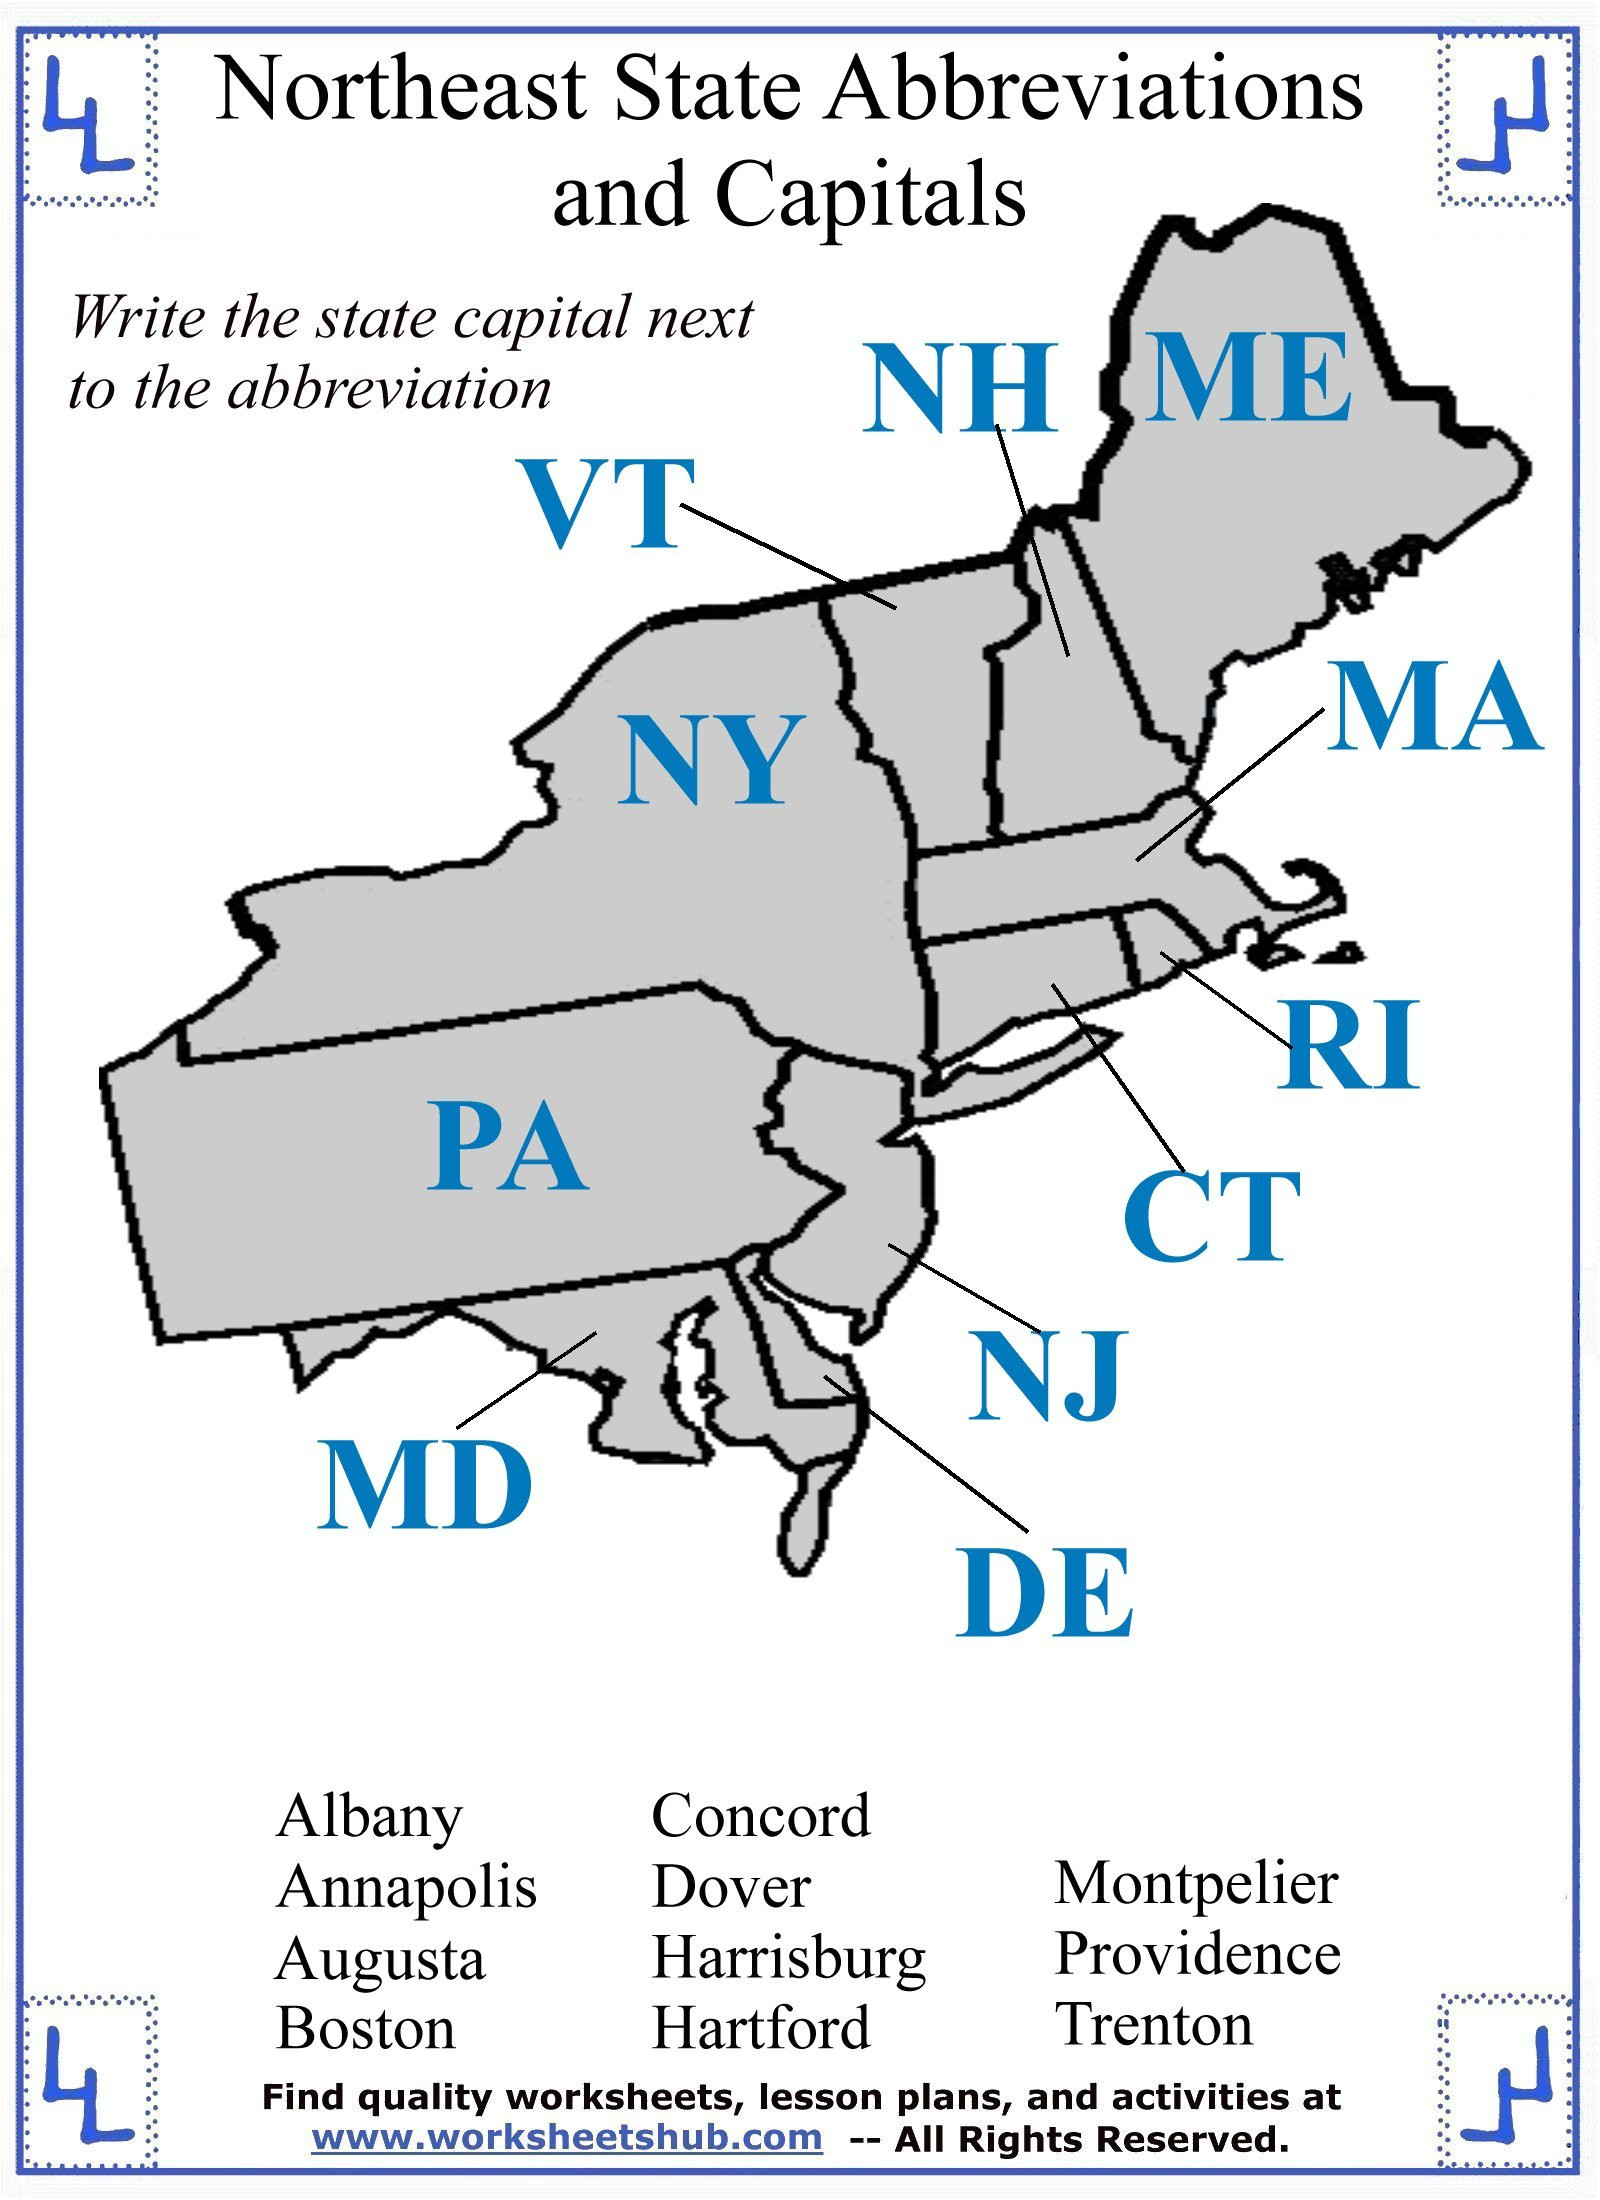 State Capitals Quiz Printable Fourth Grade social Stu S northeast Region States and